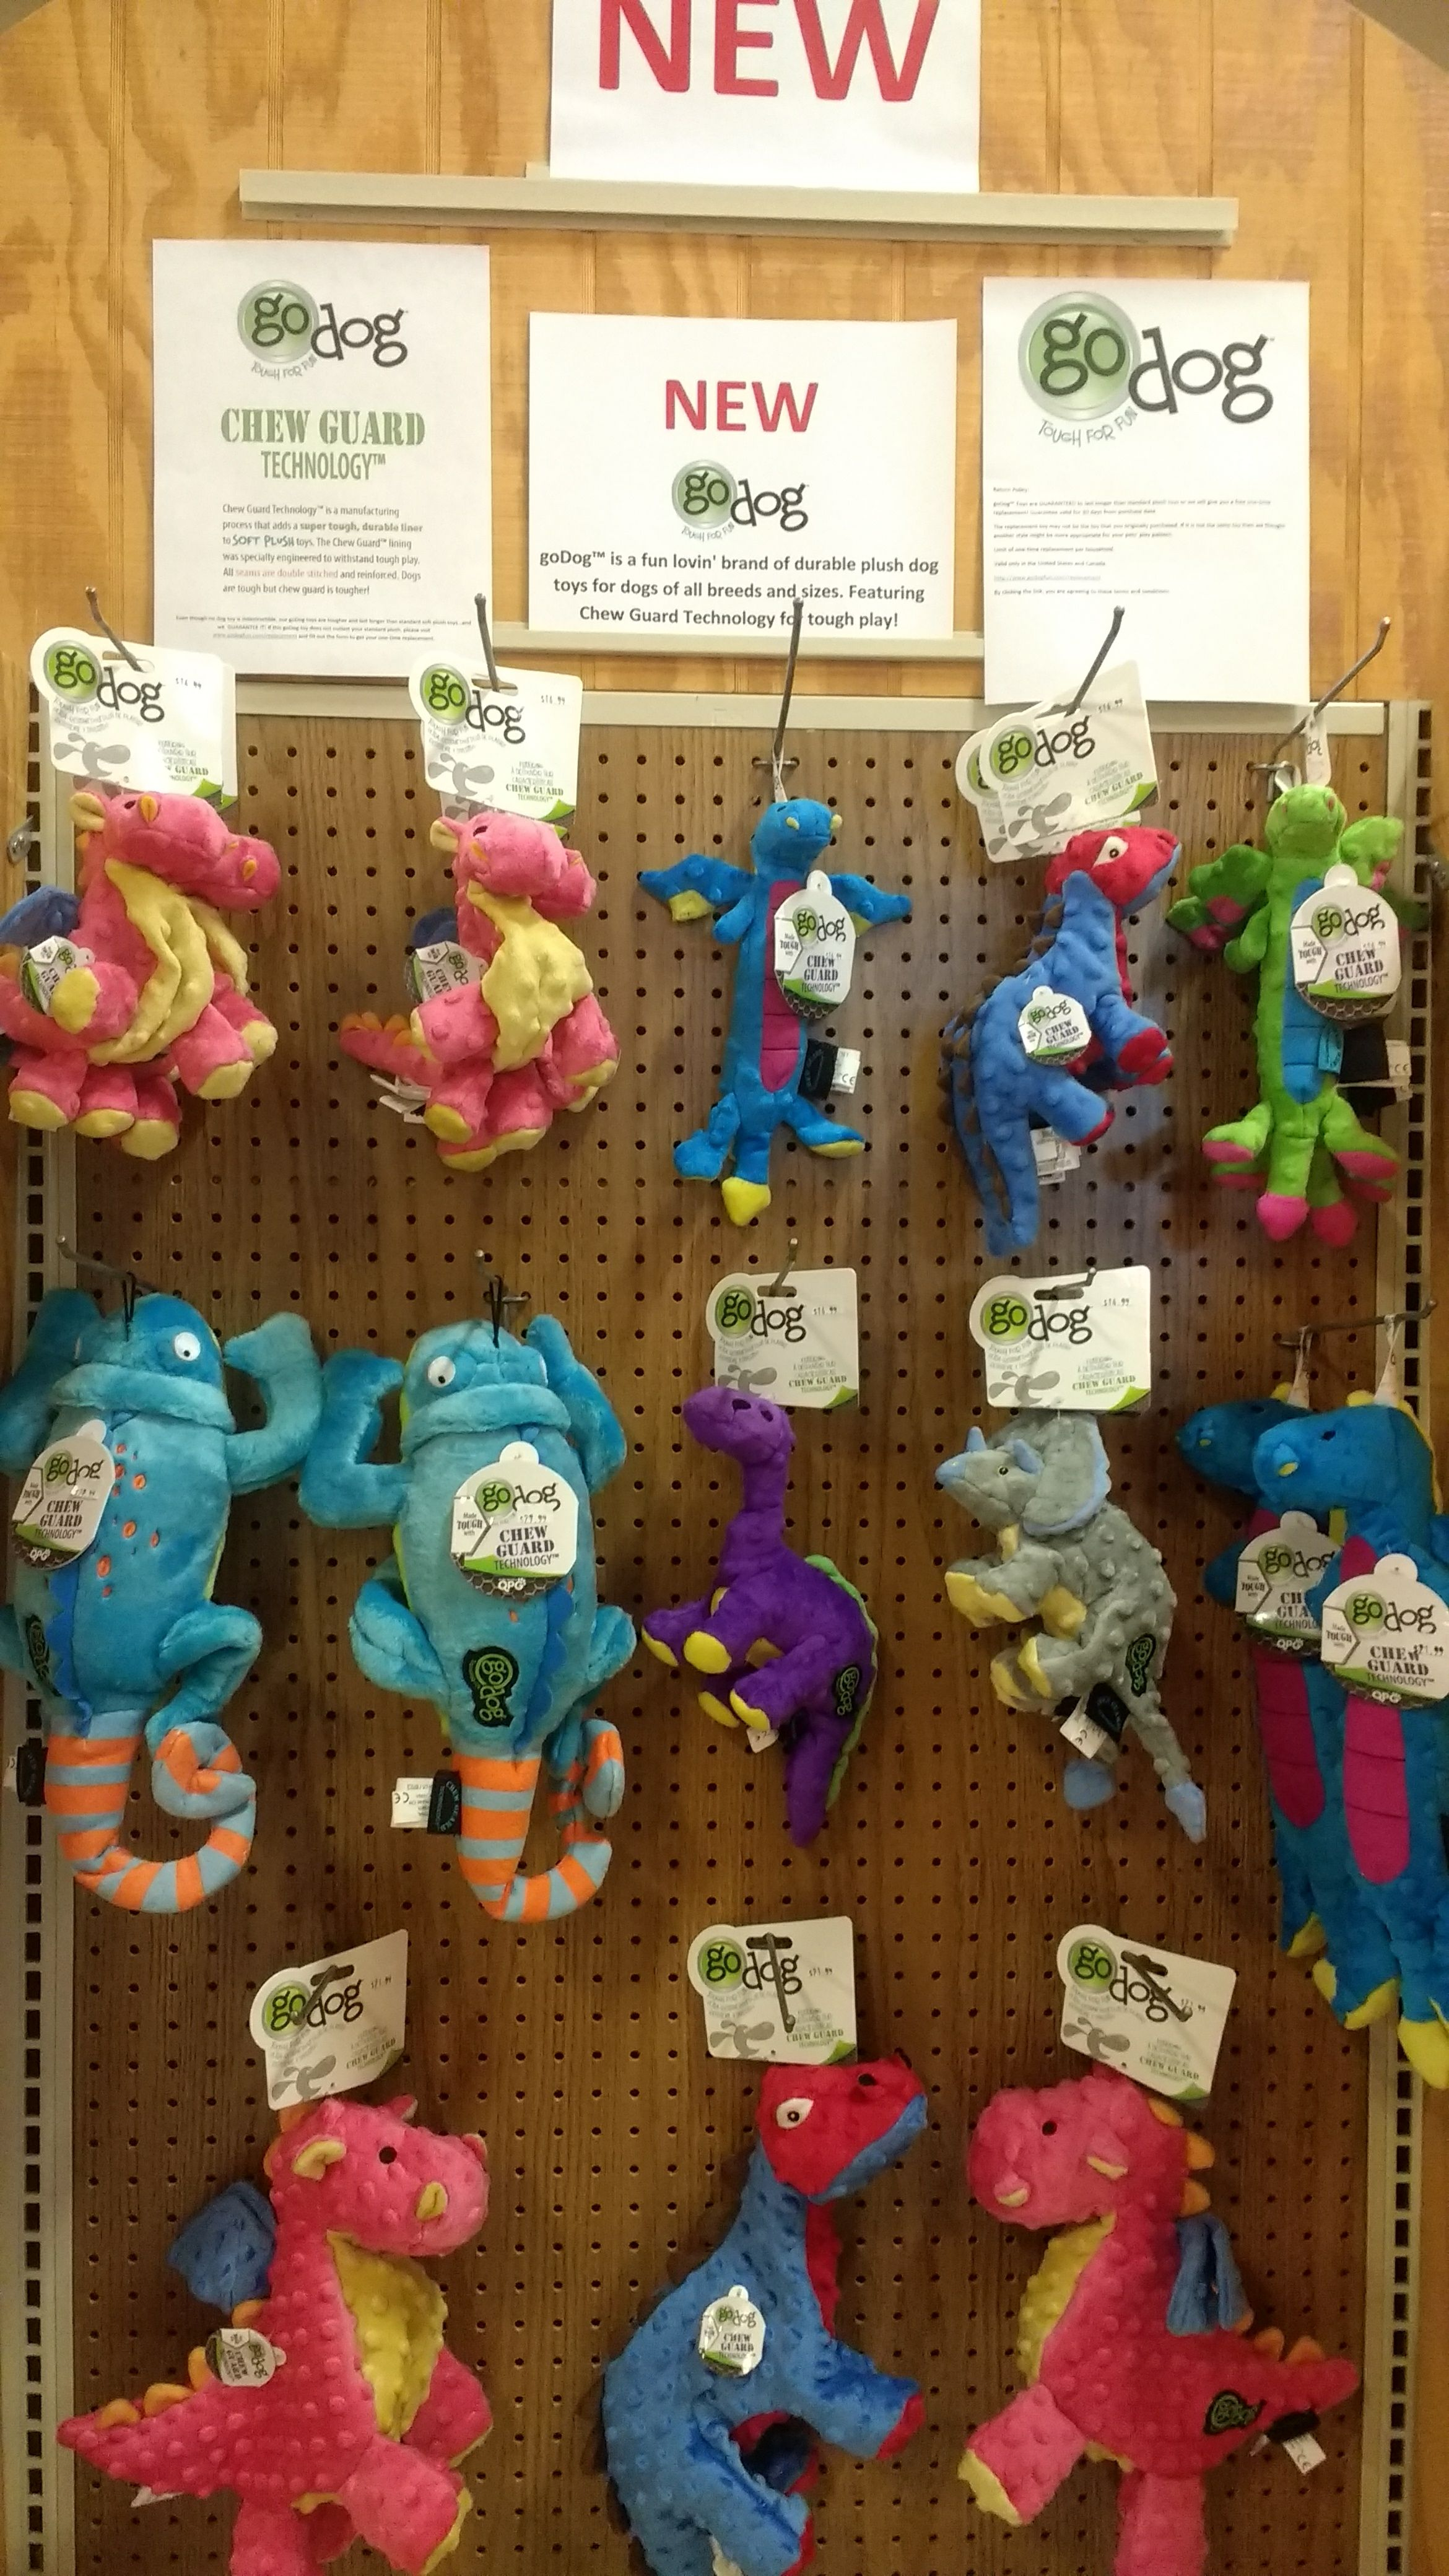 New Godog Is A Fun Lovin Brand Of Durable Plush Dog Toys For